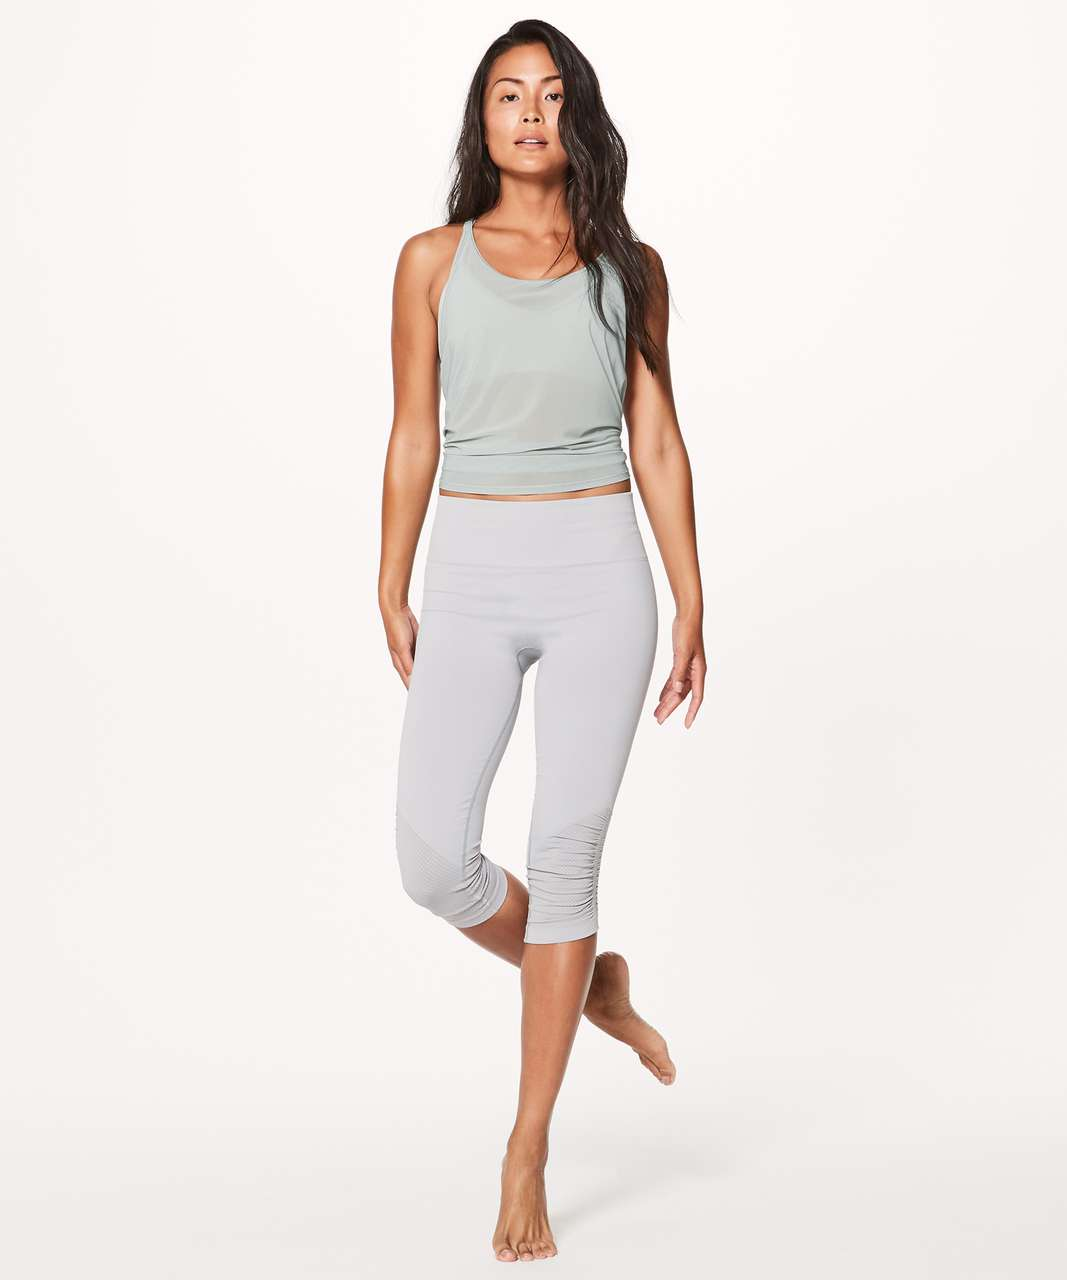 Lululemon Awakening Tank Taryn Toomey Collection - Misty Moss